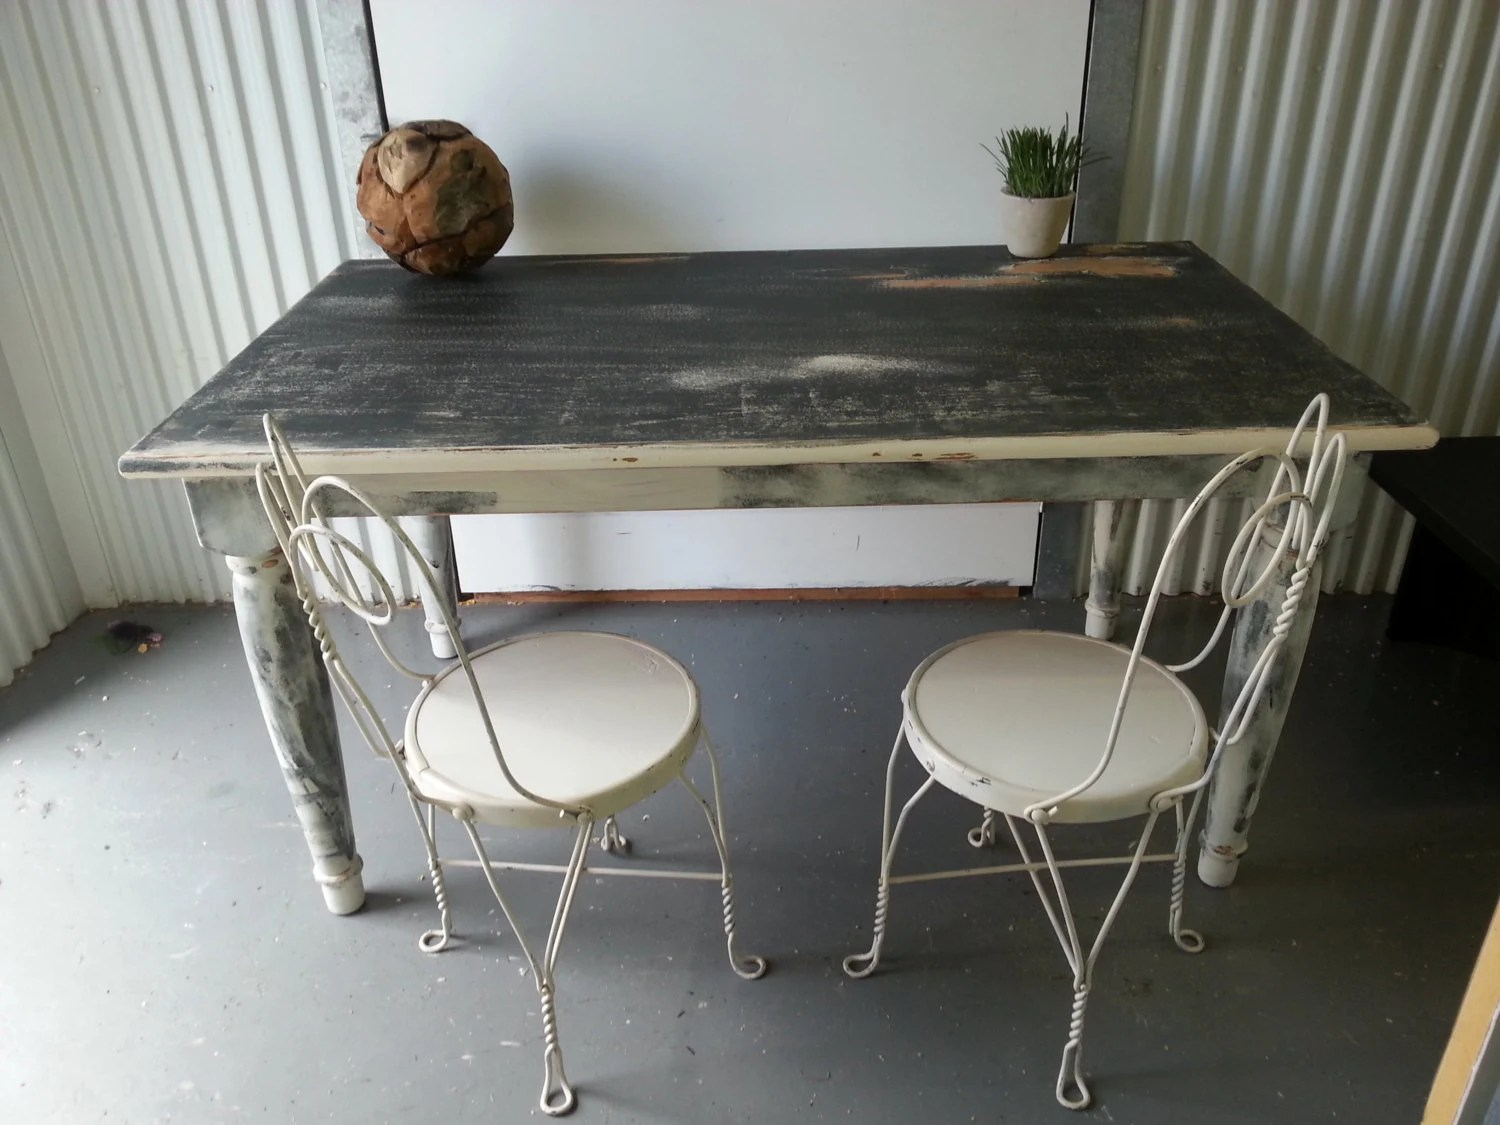 Vintage shabby chic black and white country dining table farm table table display table